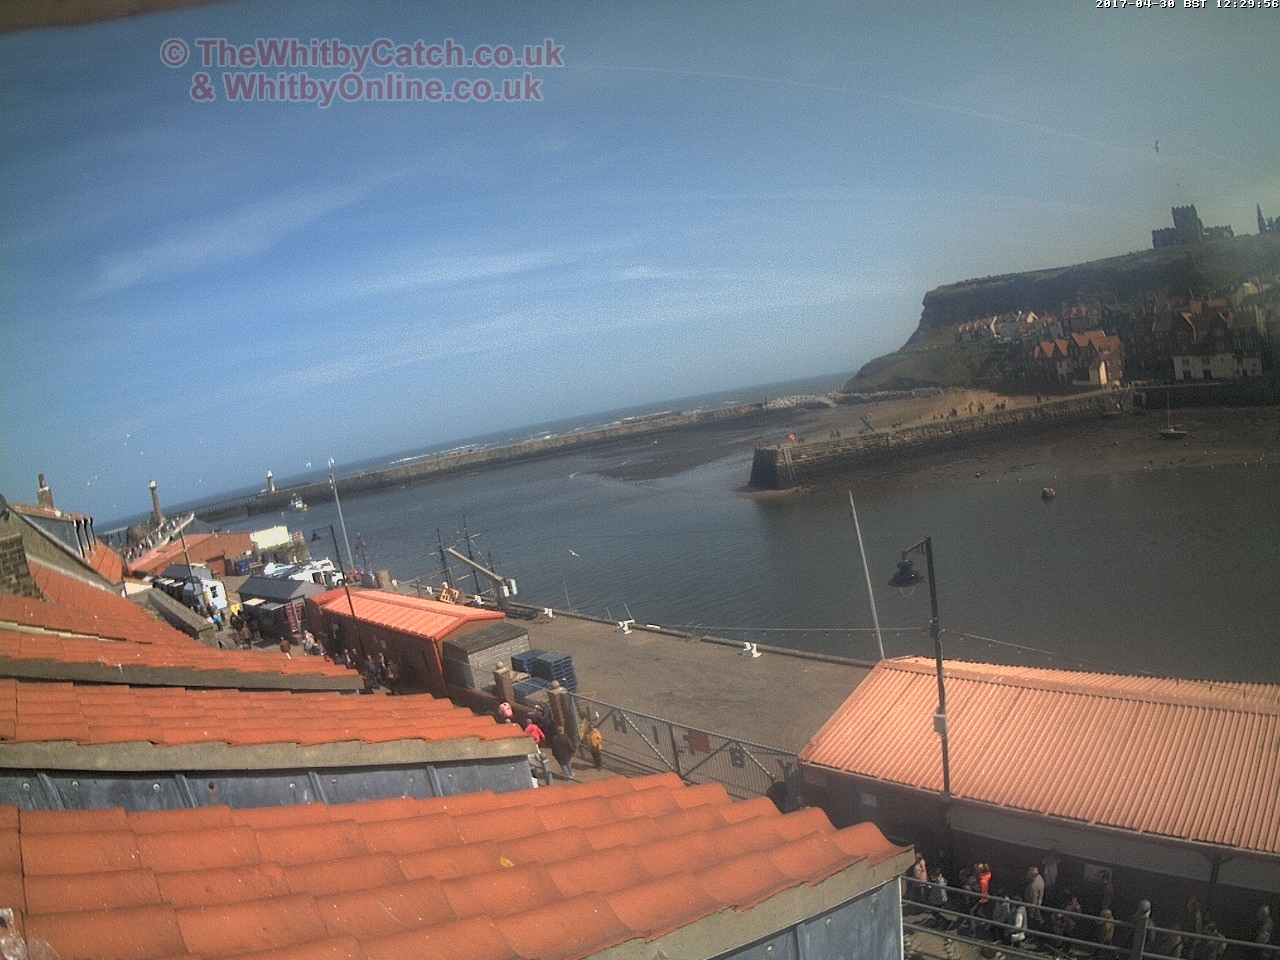 Whitby Sun 30th April 2017 12:30.